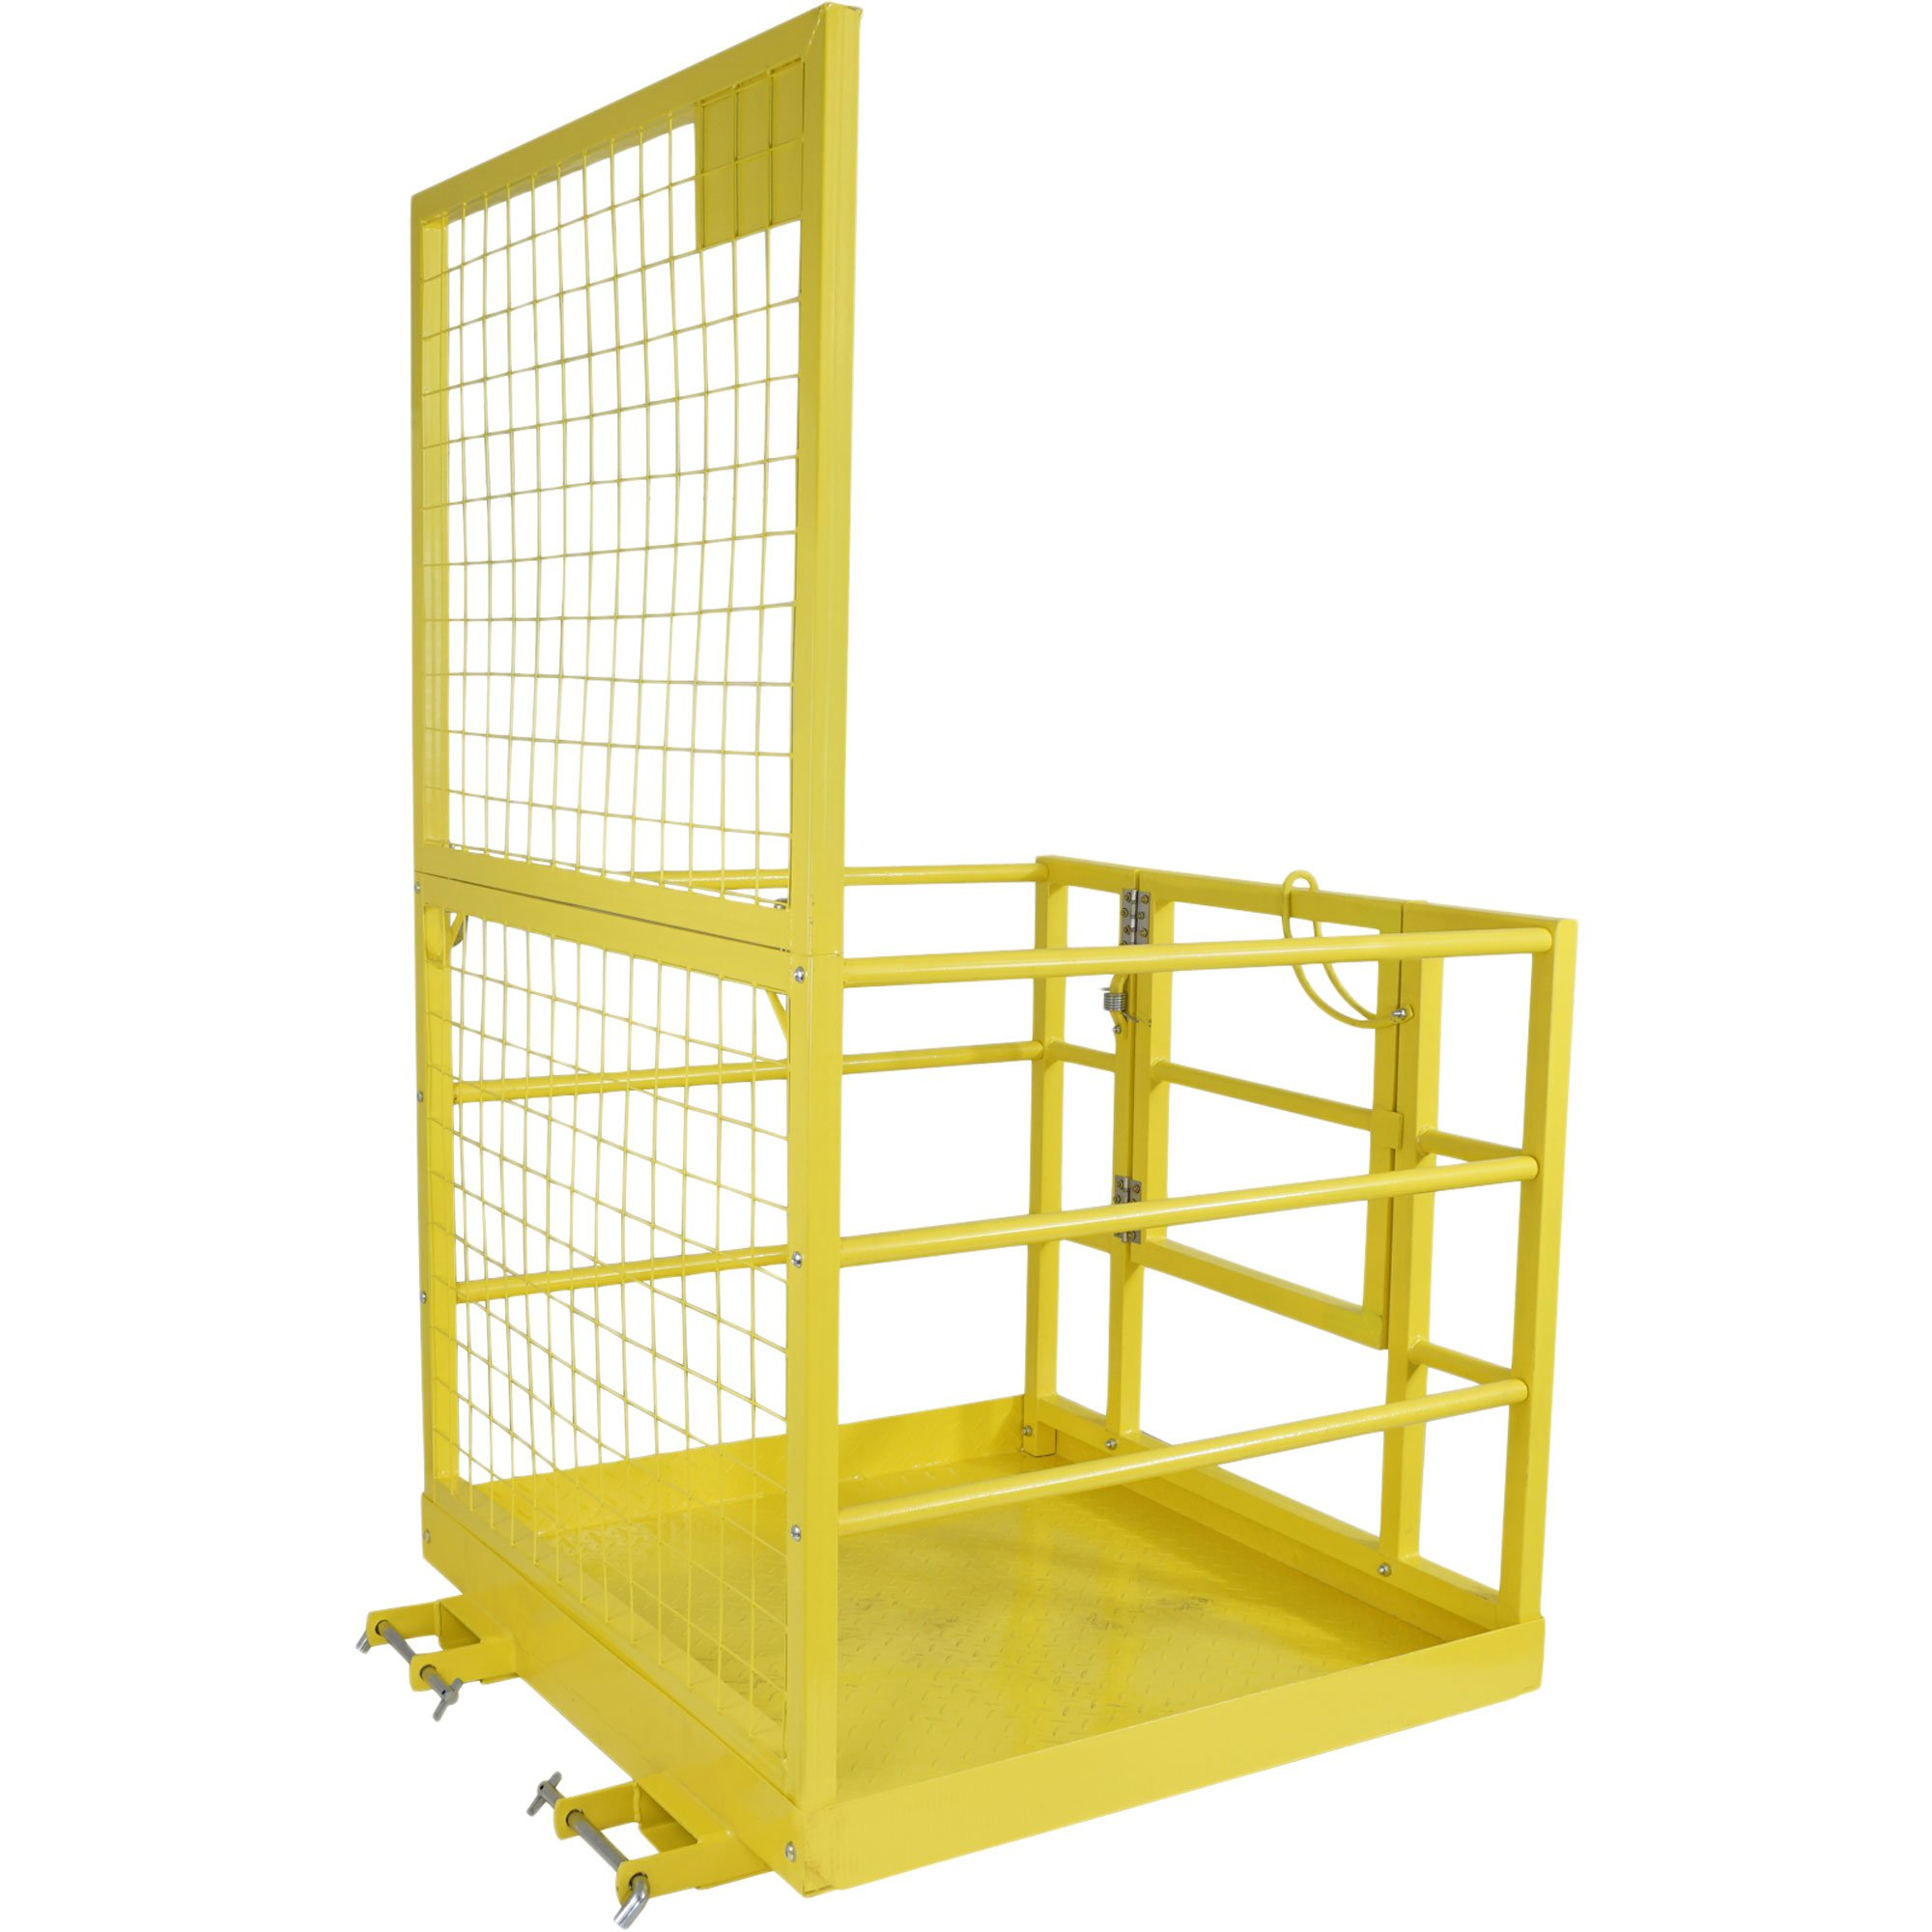 Forklift Safety Cage Work Platform Lift Basket Aerial Fence Rails Yellow 2 man by Titan Attachments (Image #3)